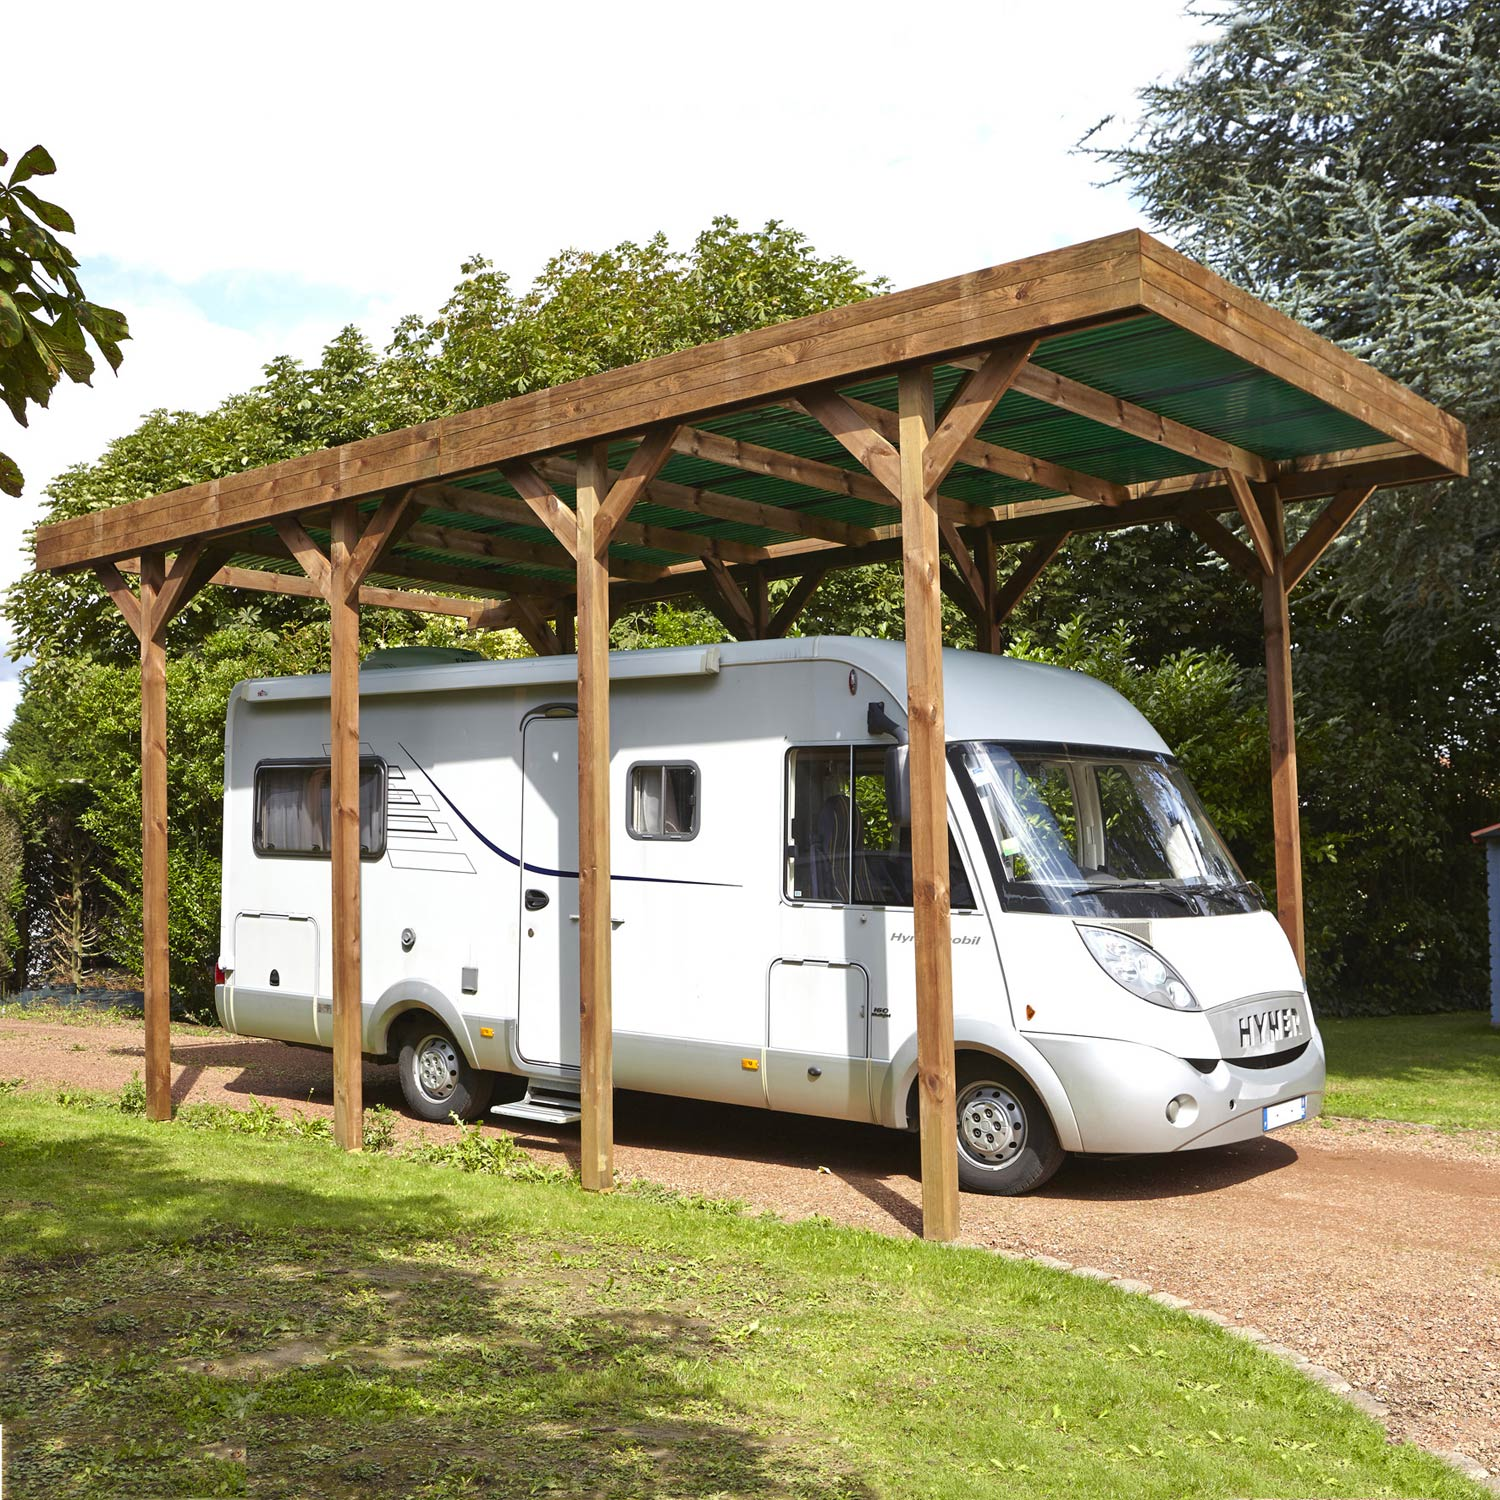 Abri Voiture Occasion Carport Bois Camping Car 1 Voiture 28 6 M² Leroy Merlin